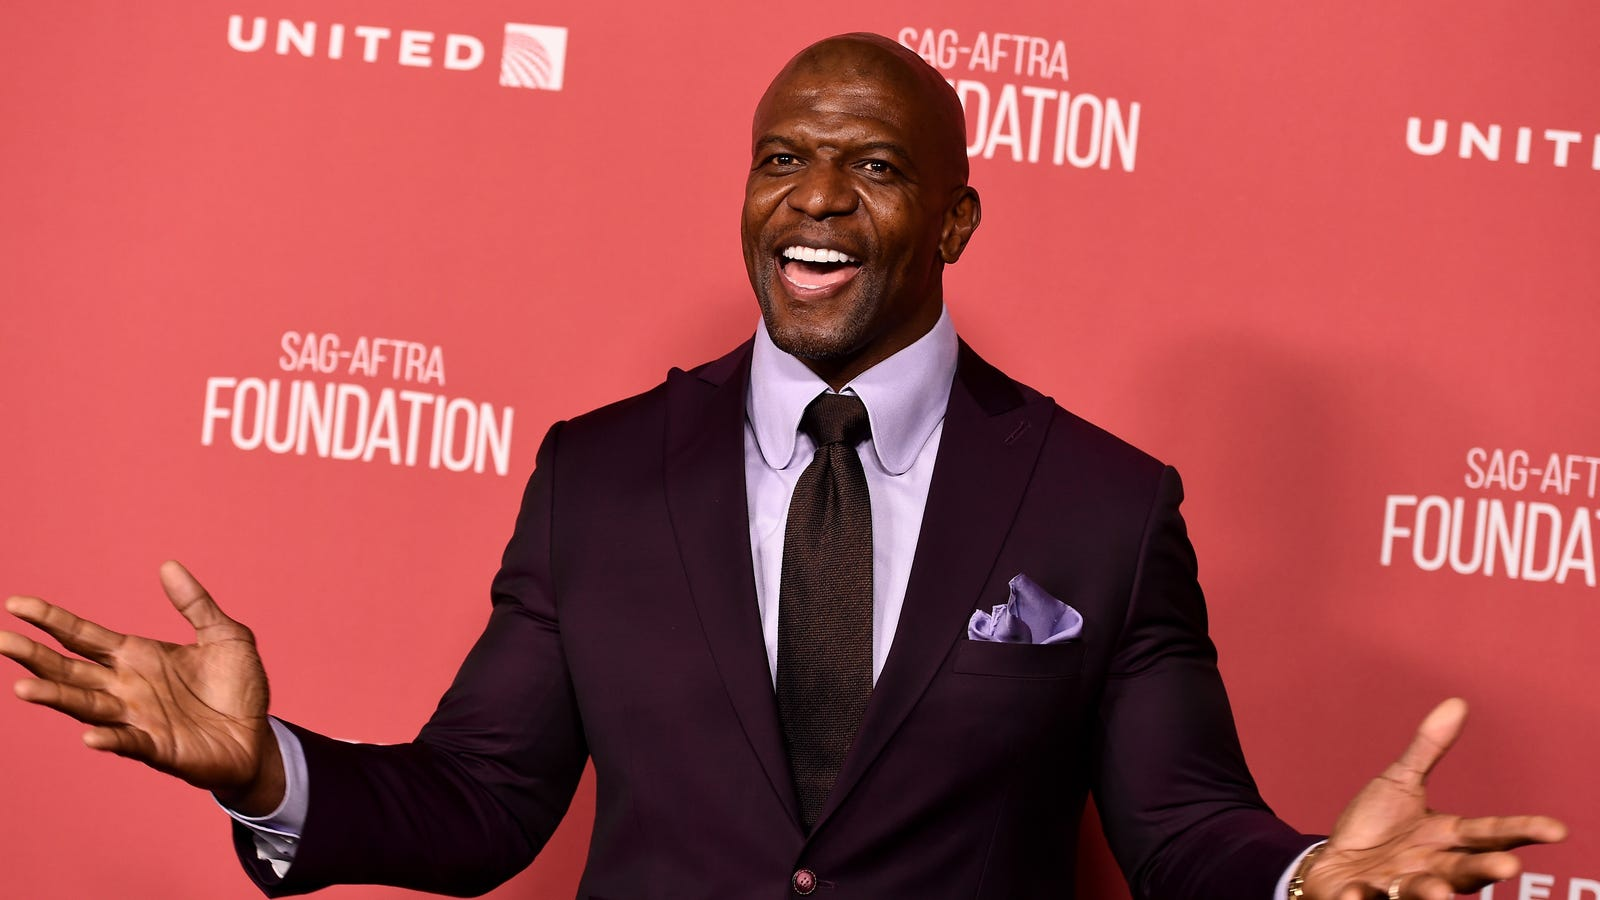 kxjimbbehcfelgfswud5 - Terry Crews Claims He Was Threatened by Expendables Producer to Drop His Sexual Harassment Lawsuit Against Stallone's Agent